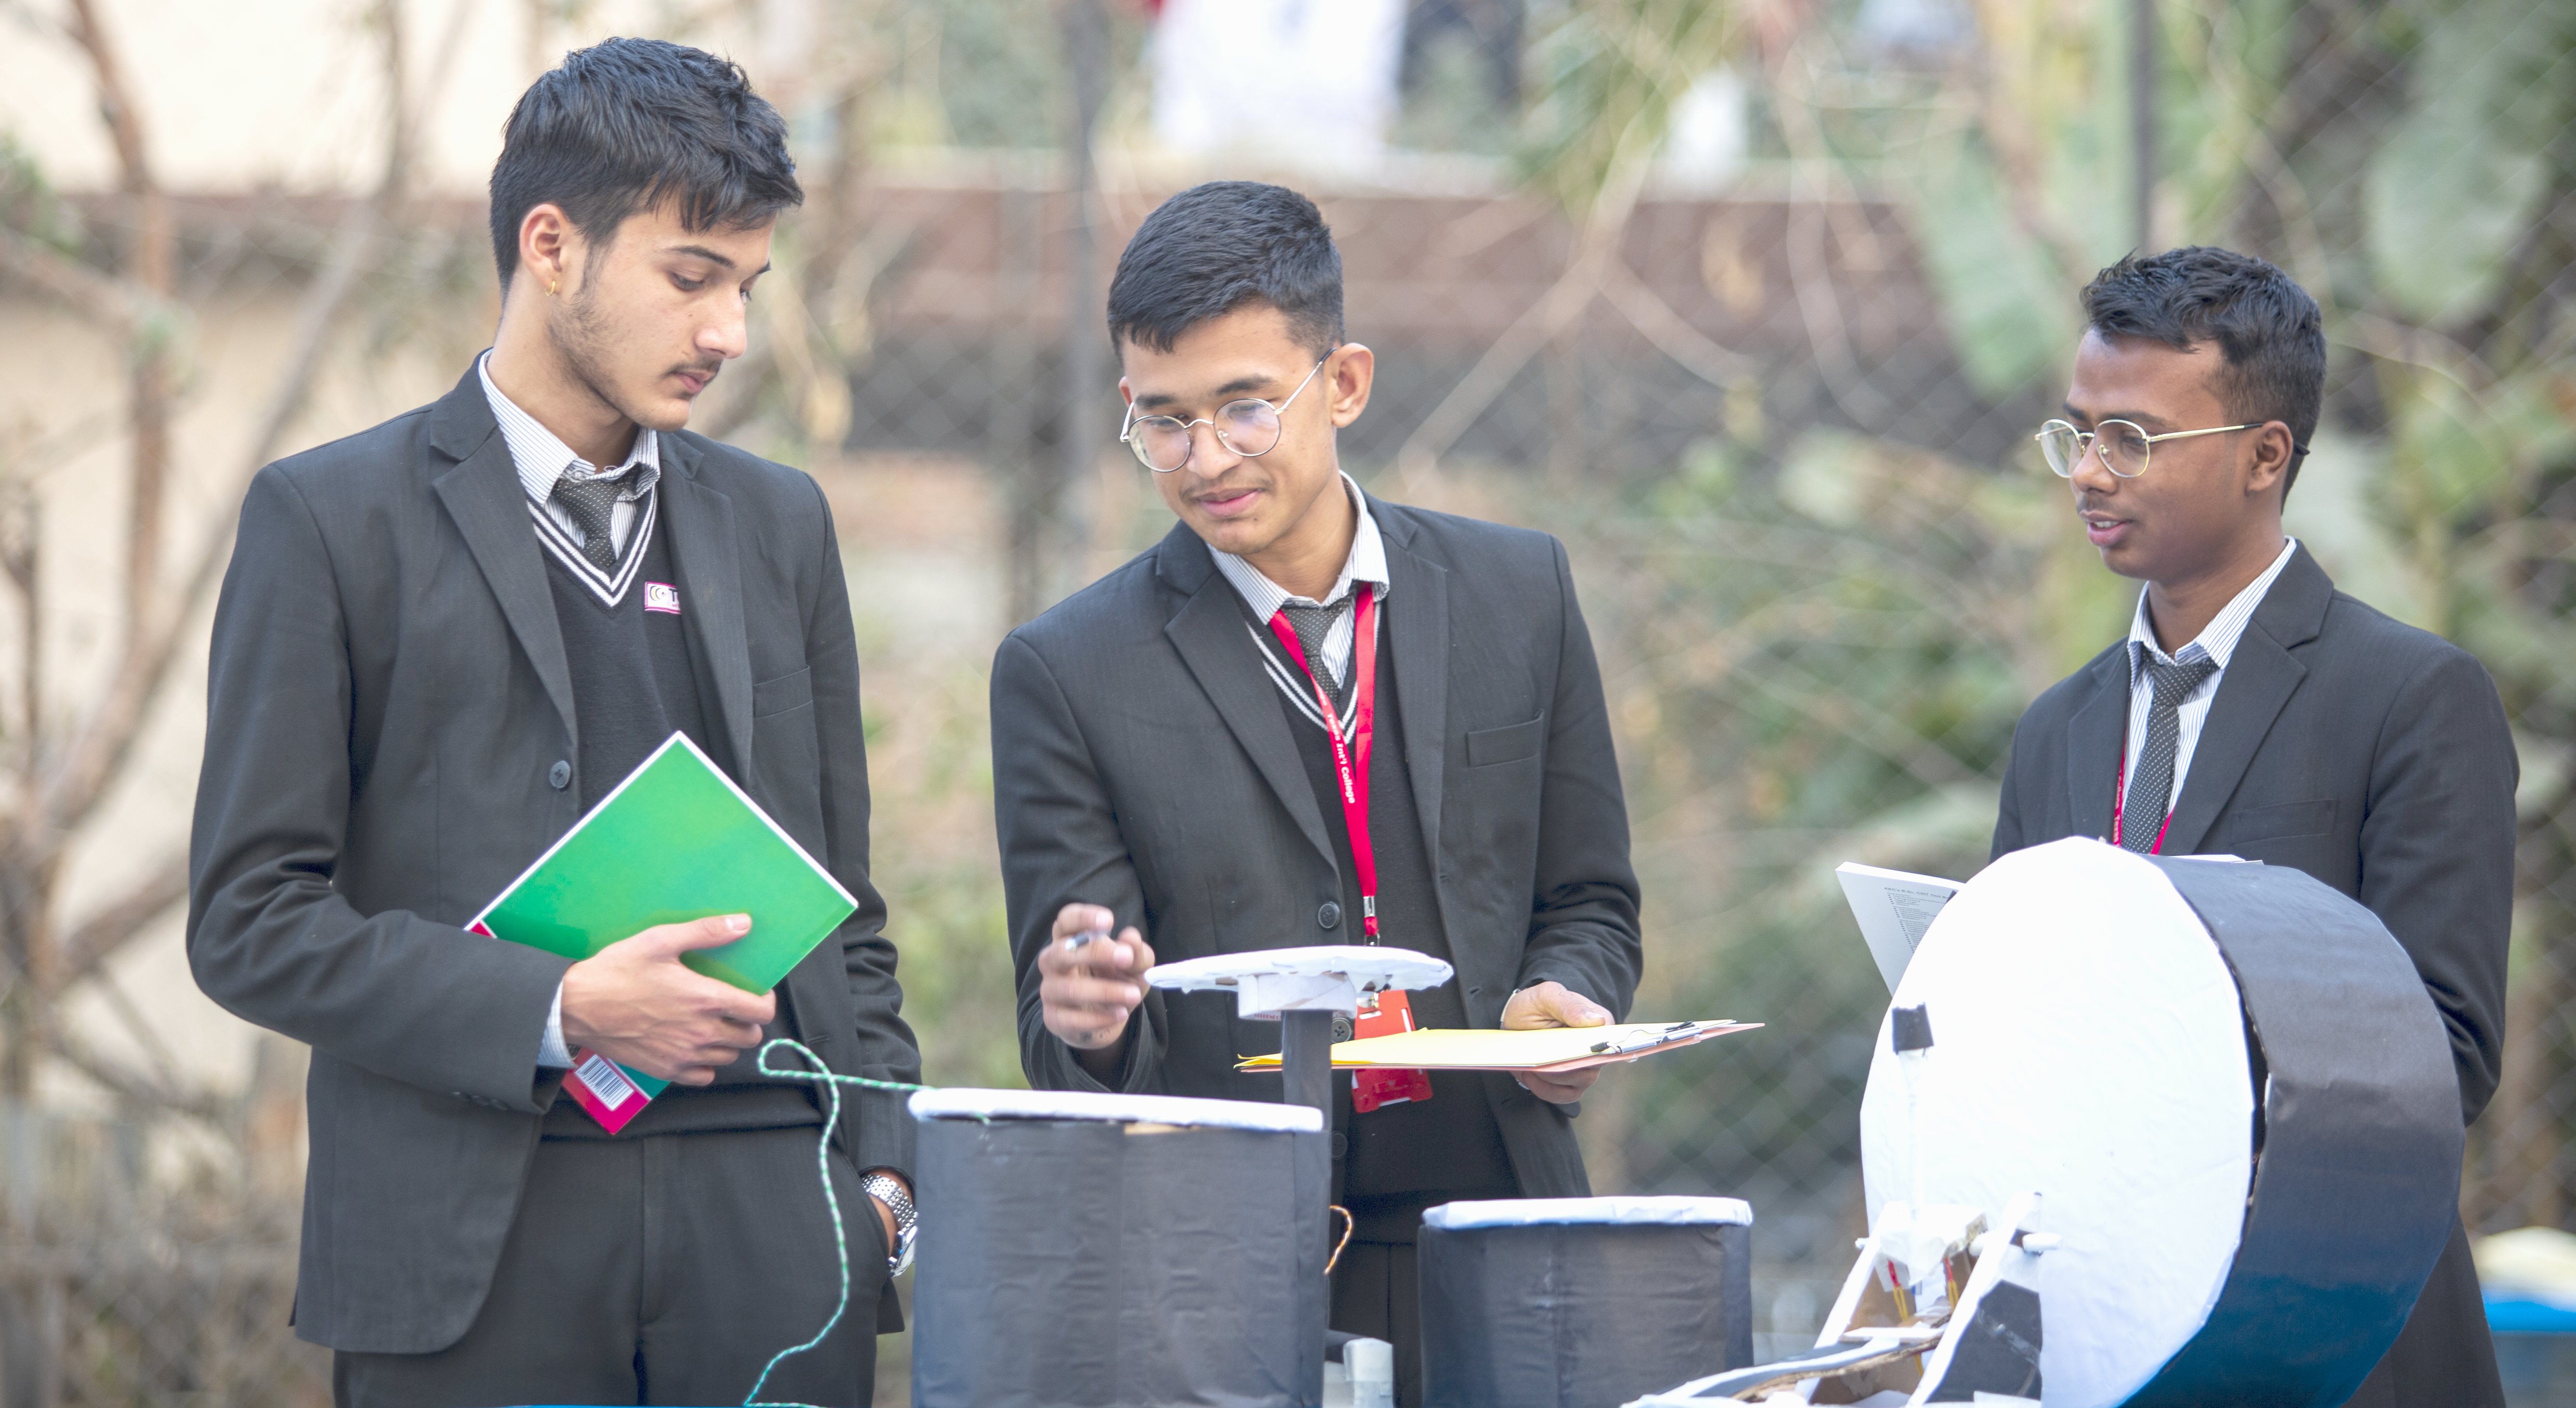 Students in Exhibition